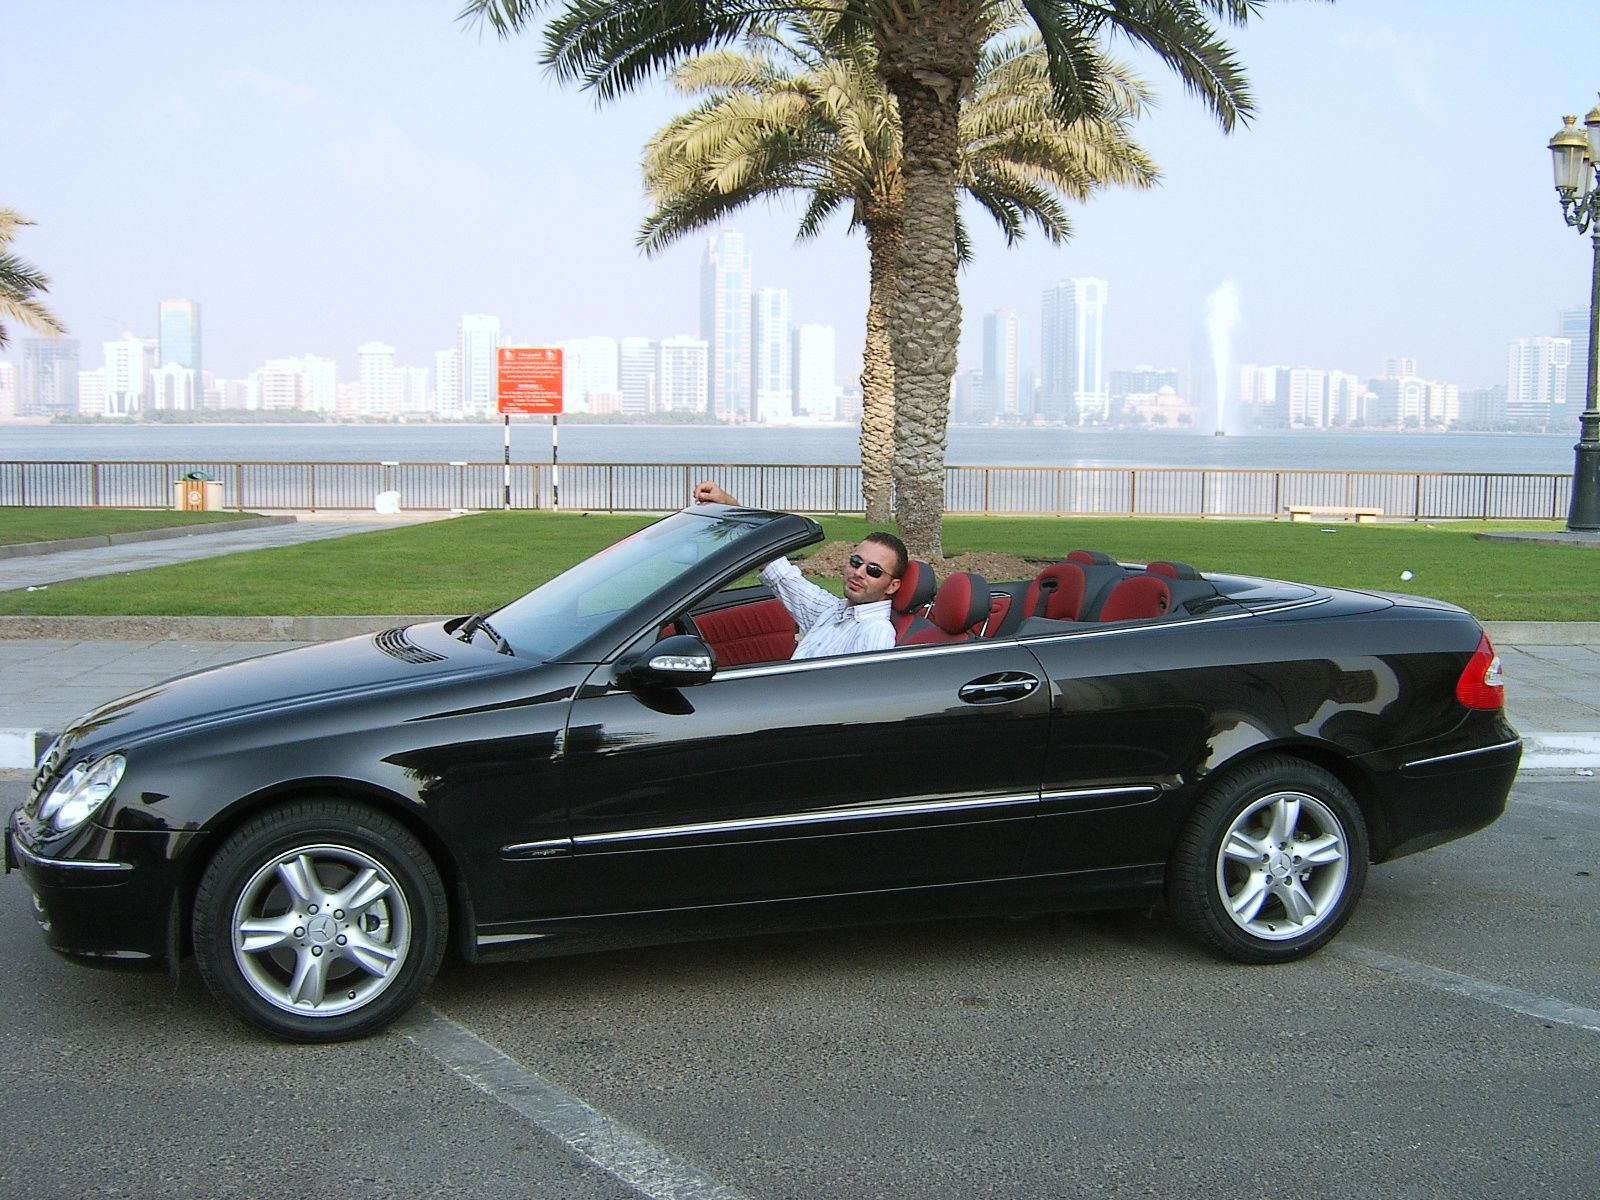 2005 mercedes benz clk class clk320 convertible 2005 mercedes benz things to wear pinterest. Black Bedroom Furniture Sets. Home Design Ideas